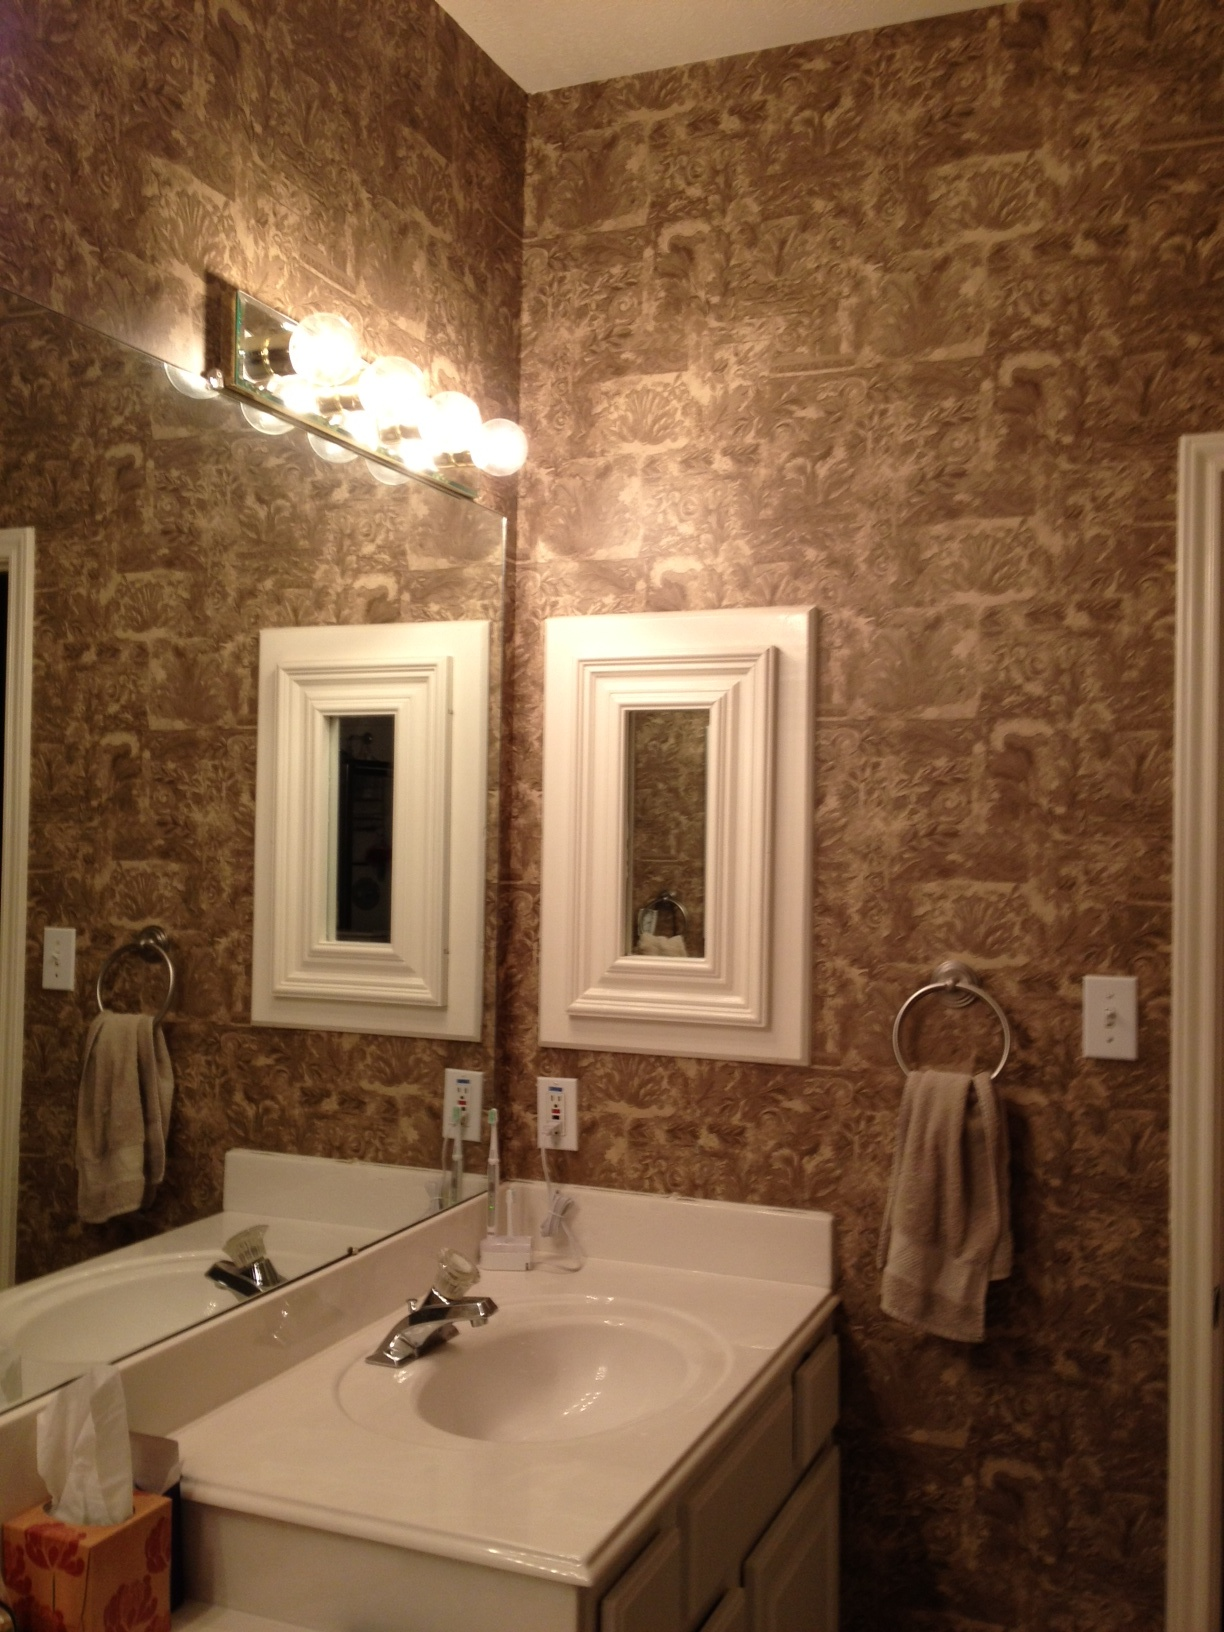 Master Bathroom Wallpaper Help Vinyl Paint Sand Color